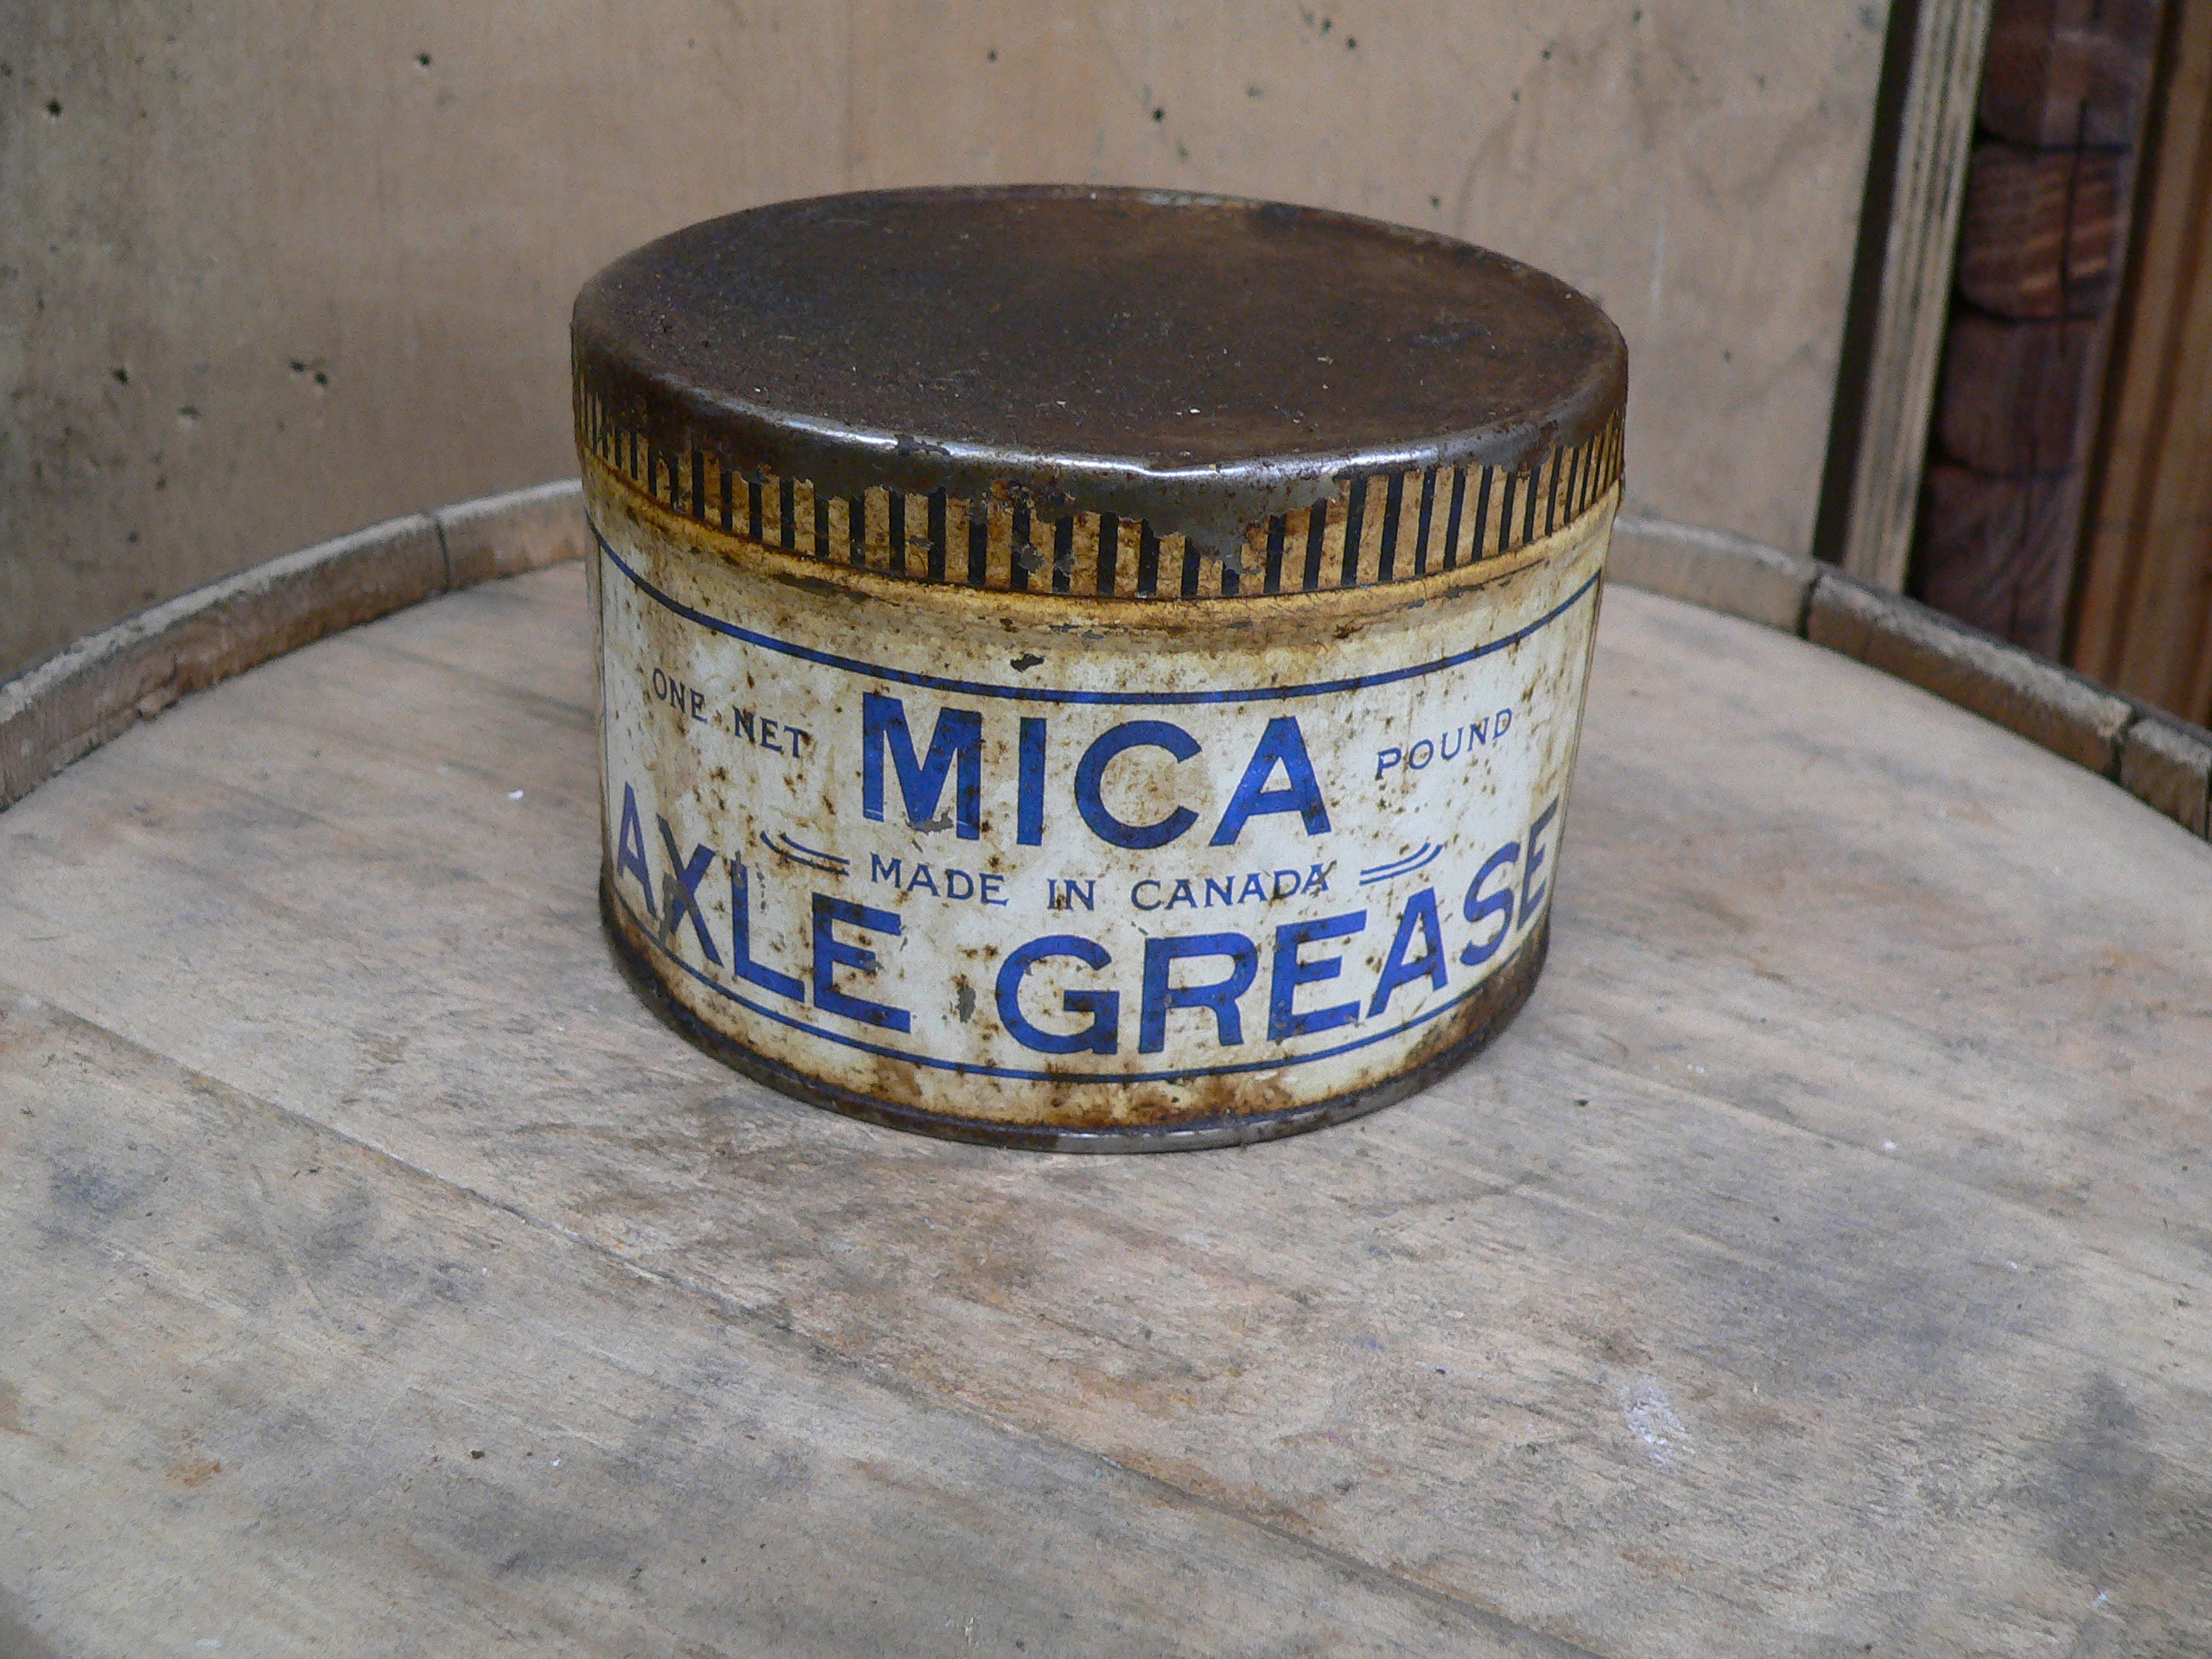 Canne de tôle axles grease mica # 5604.1